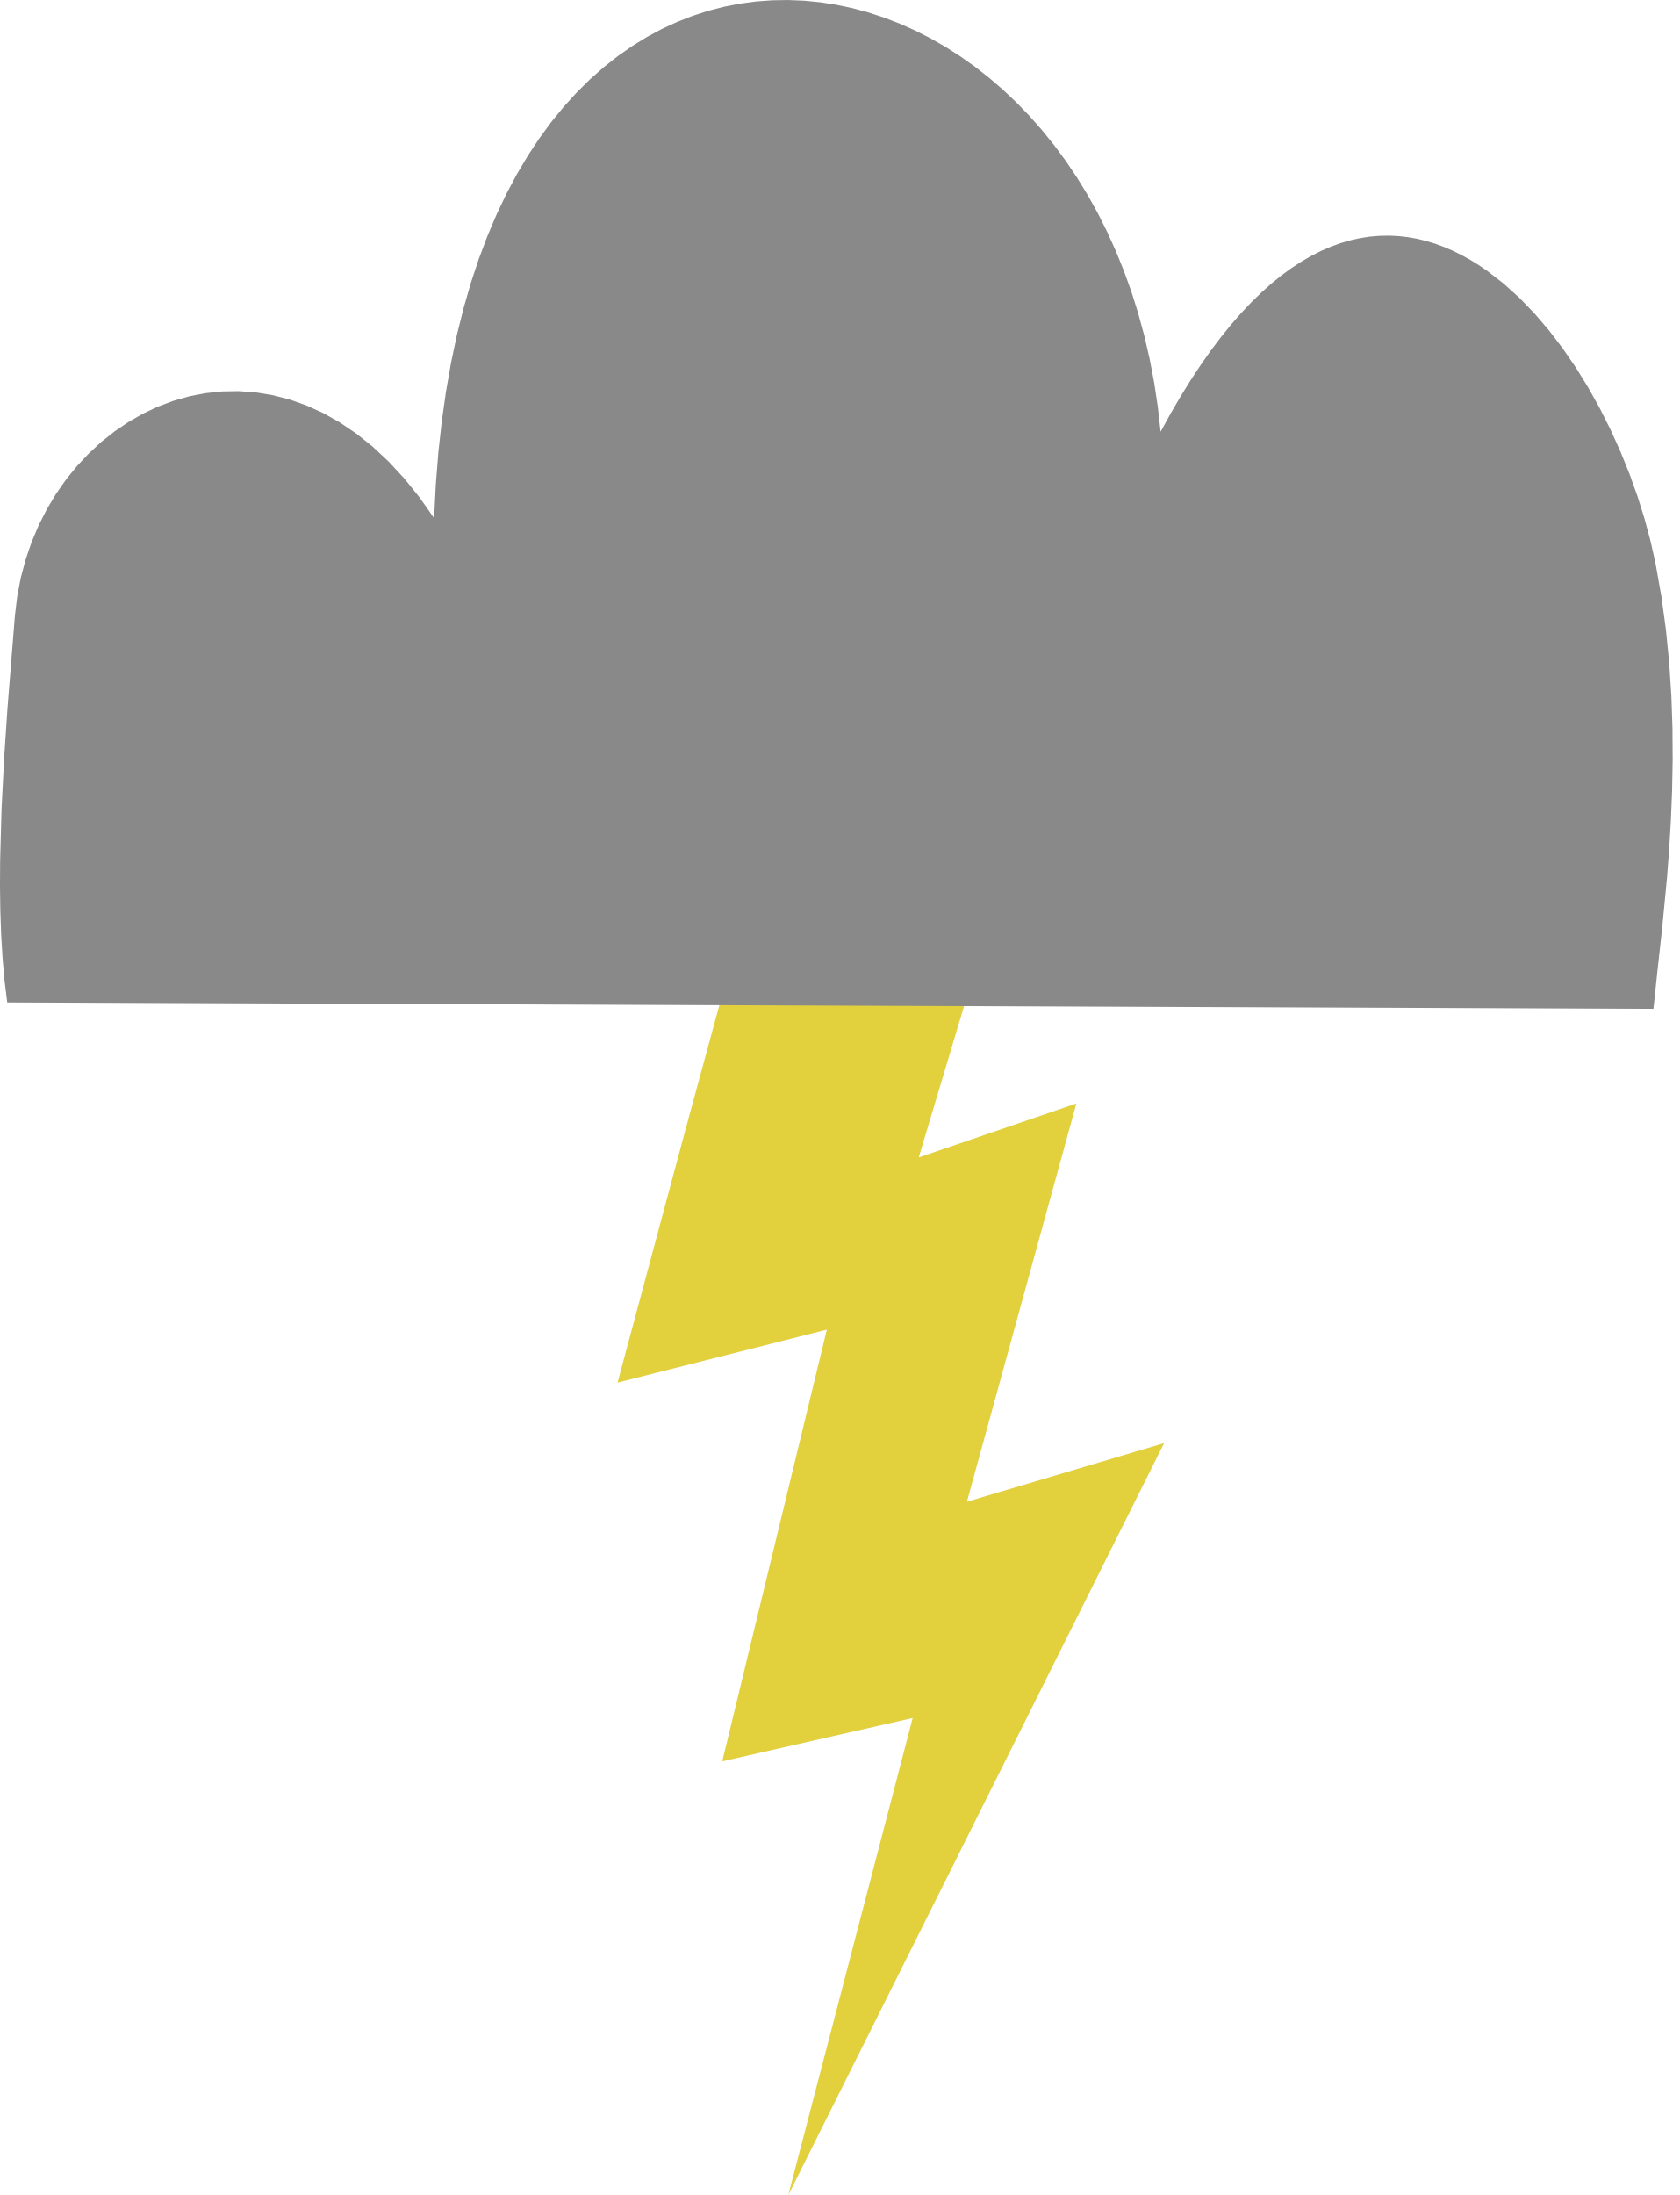 Download Free Lightning Bolt Images #34138 - Free Icons and